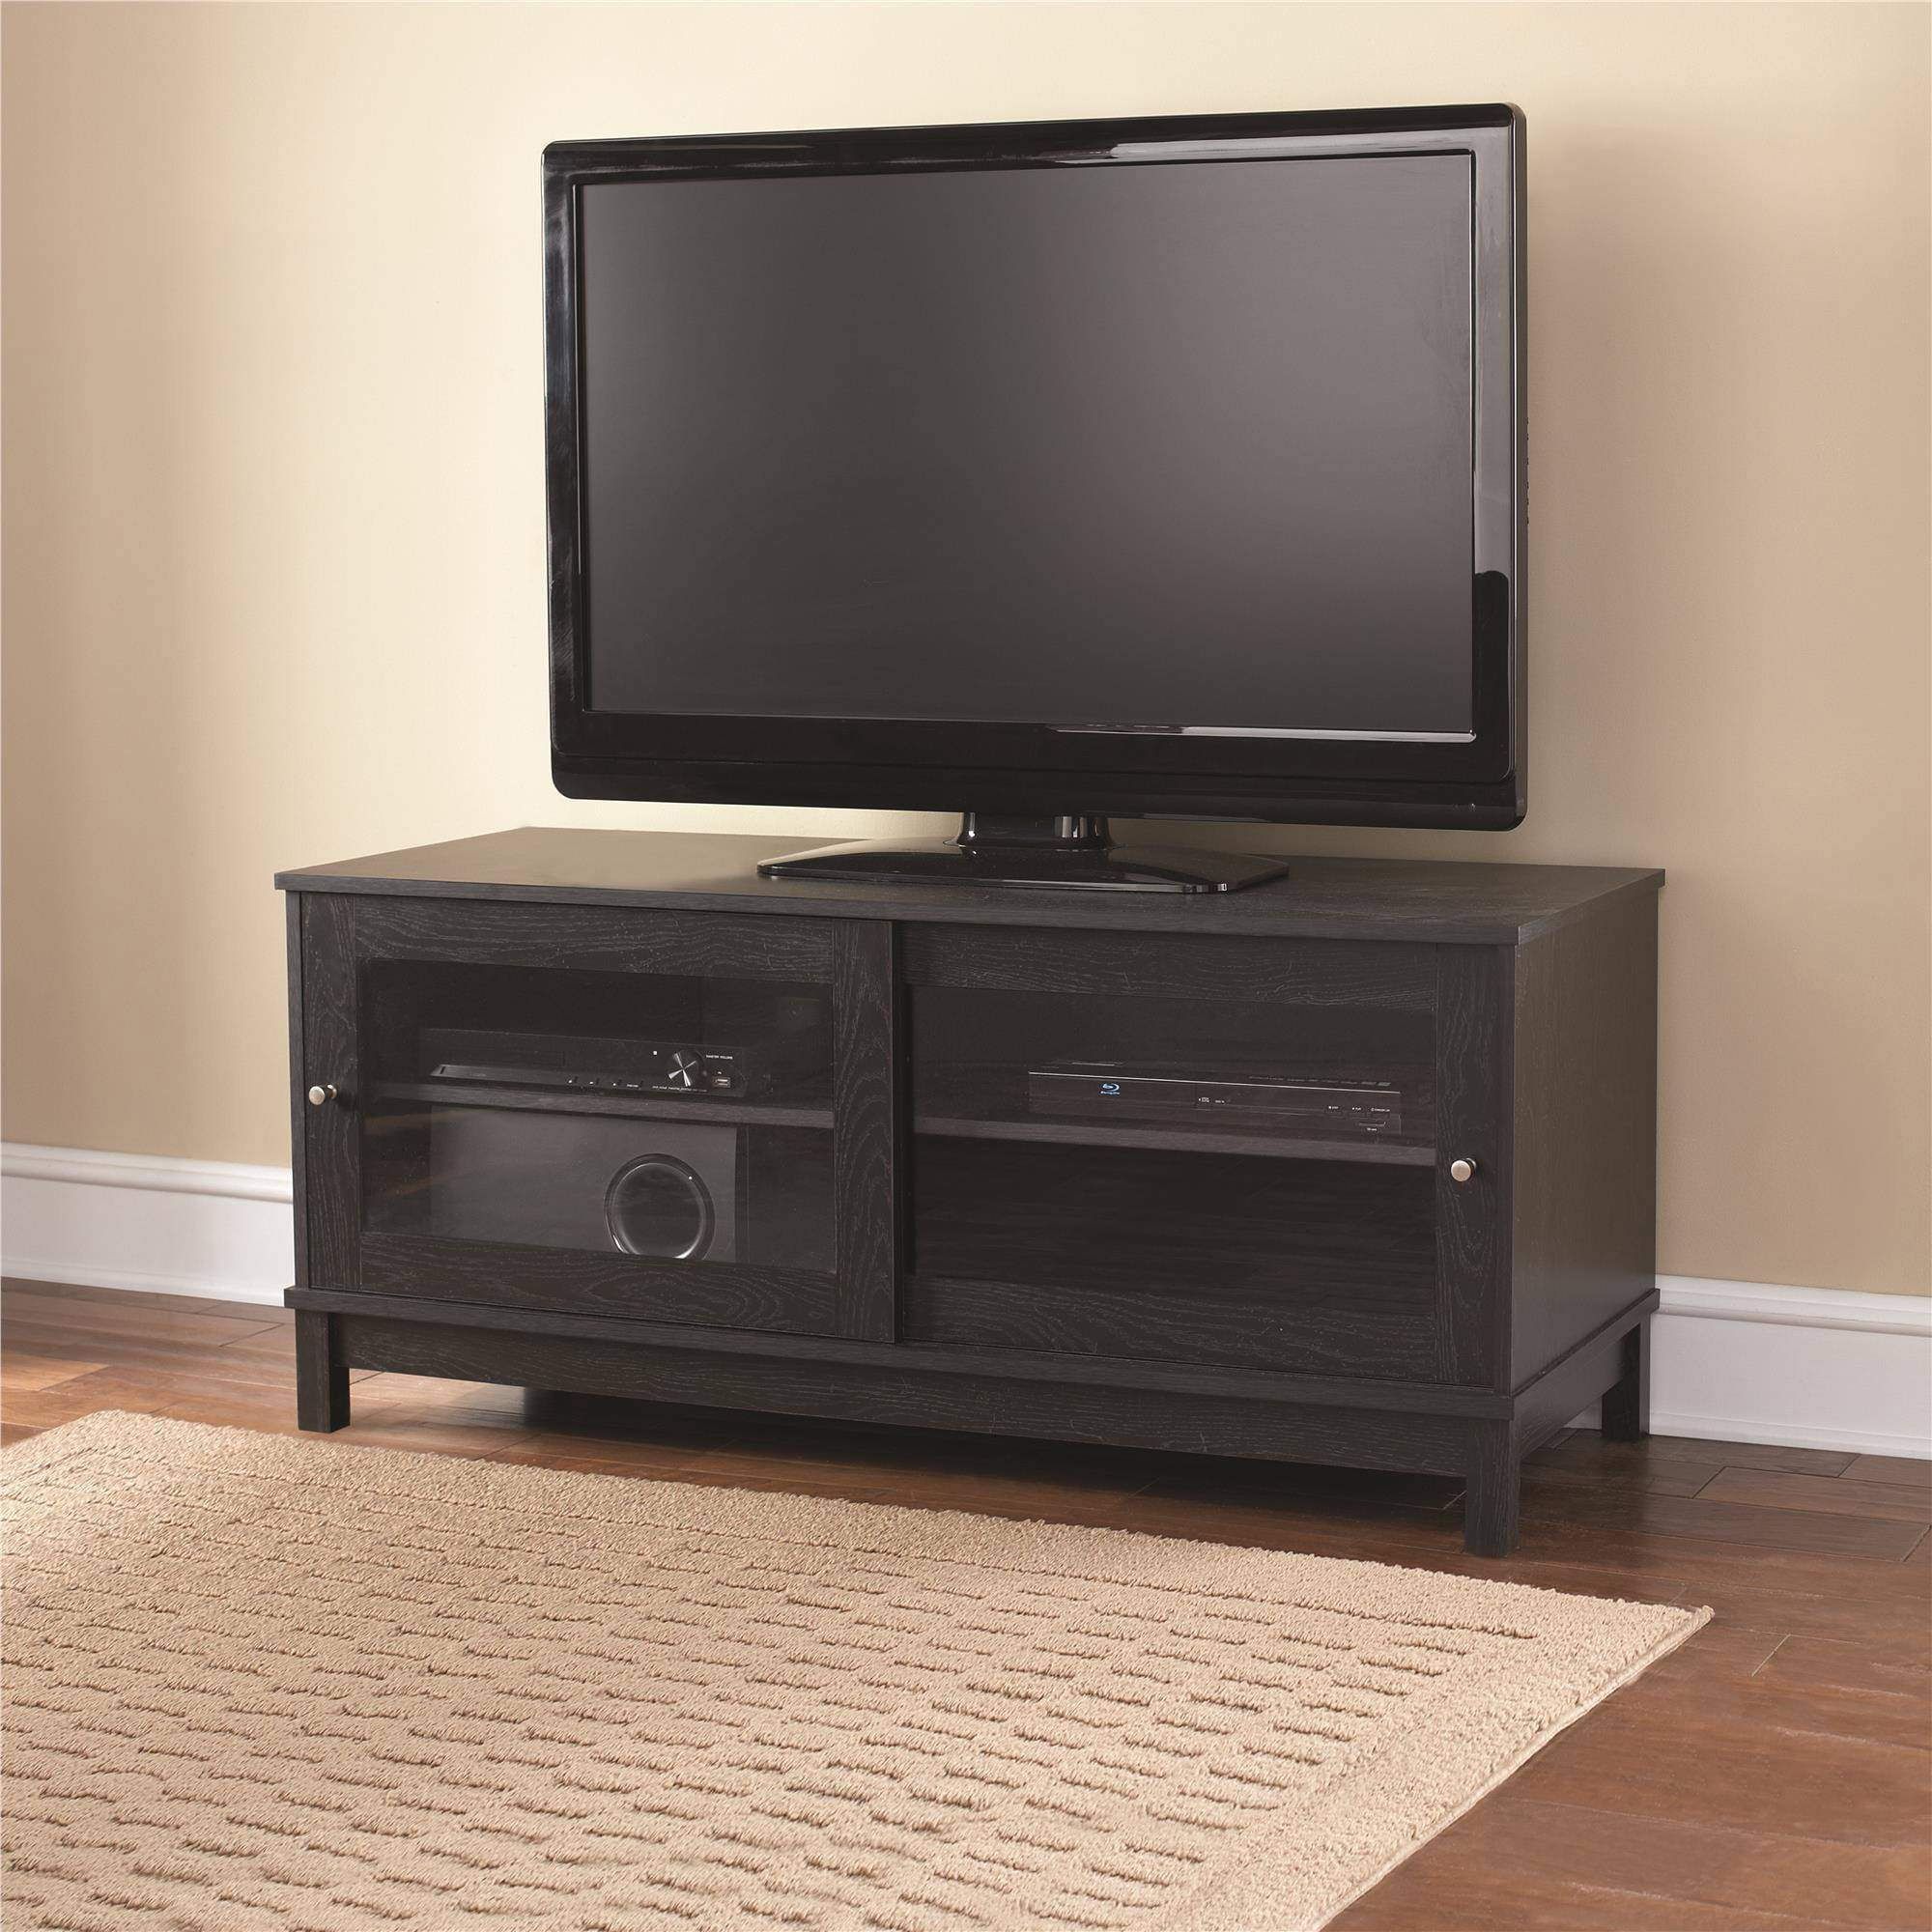 mainstays 55 tv stand with sliding glass doors multiple colors walmart com - Walmart Small Tv Stands